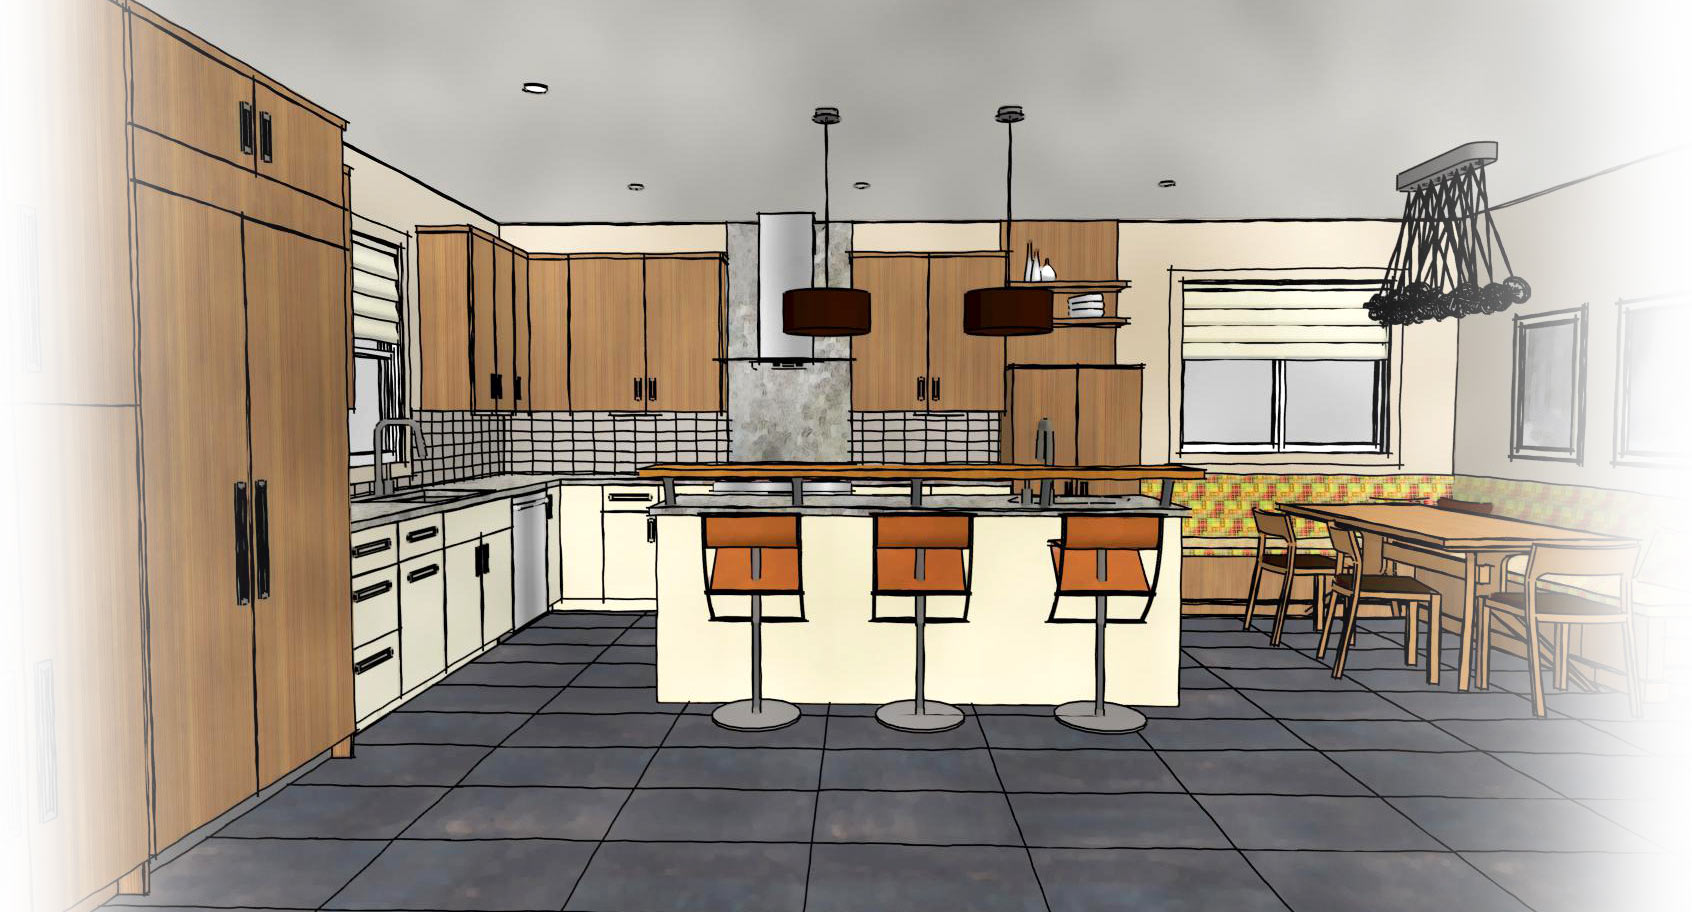 kitchen rendered as a line drawing chief architect interior software for professional interior designers  rh   chiefarchitect com